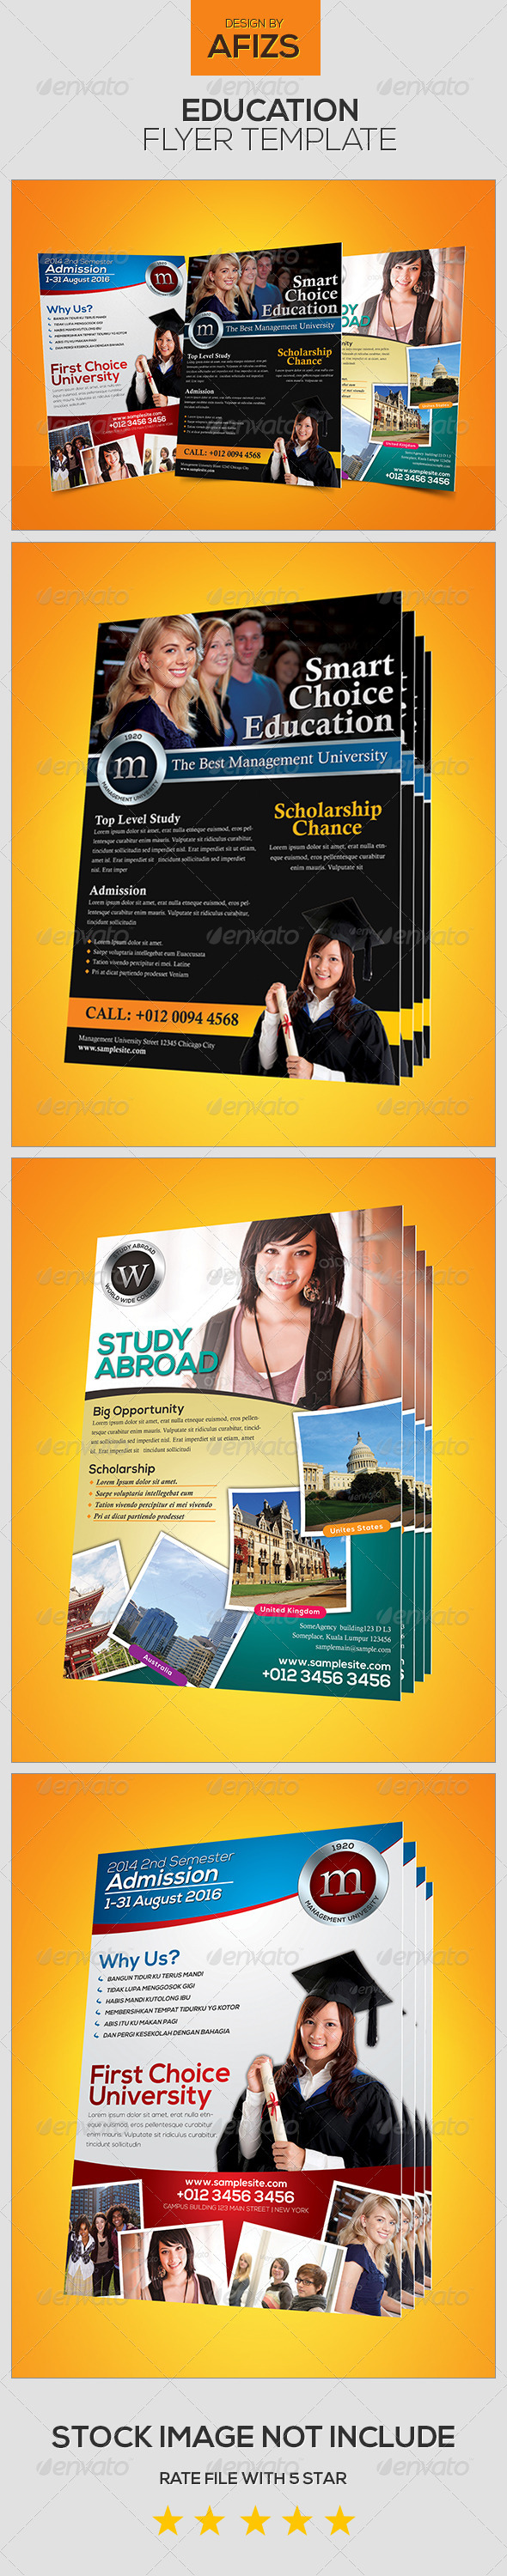 GraphicRiver Education Flyer 5562087